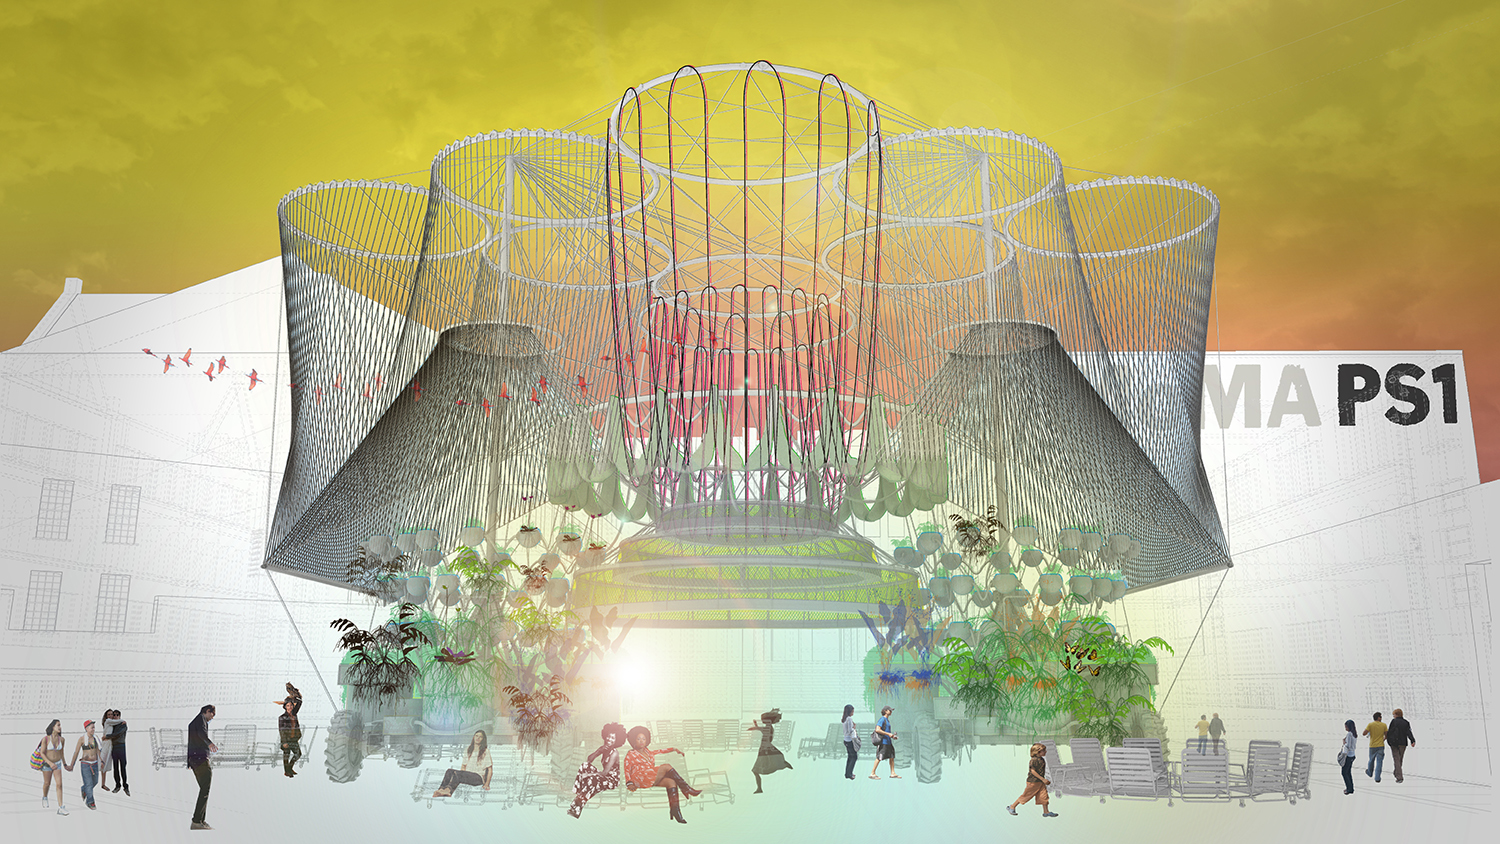 MoMA PS1 announces winning design for this summer's Warm Up installation (2015)